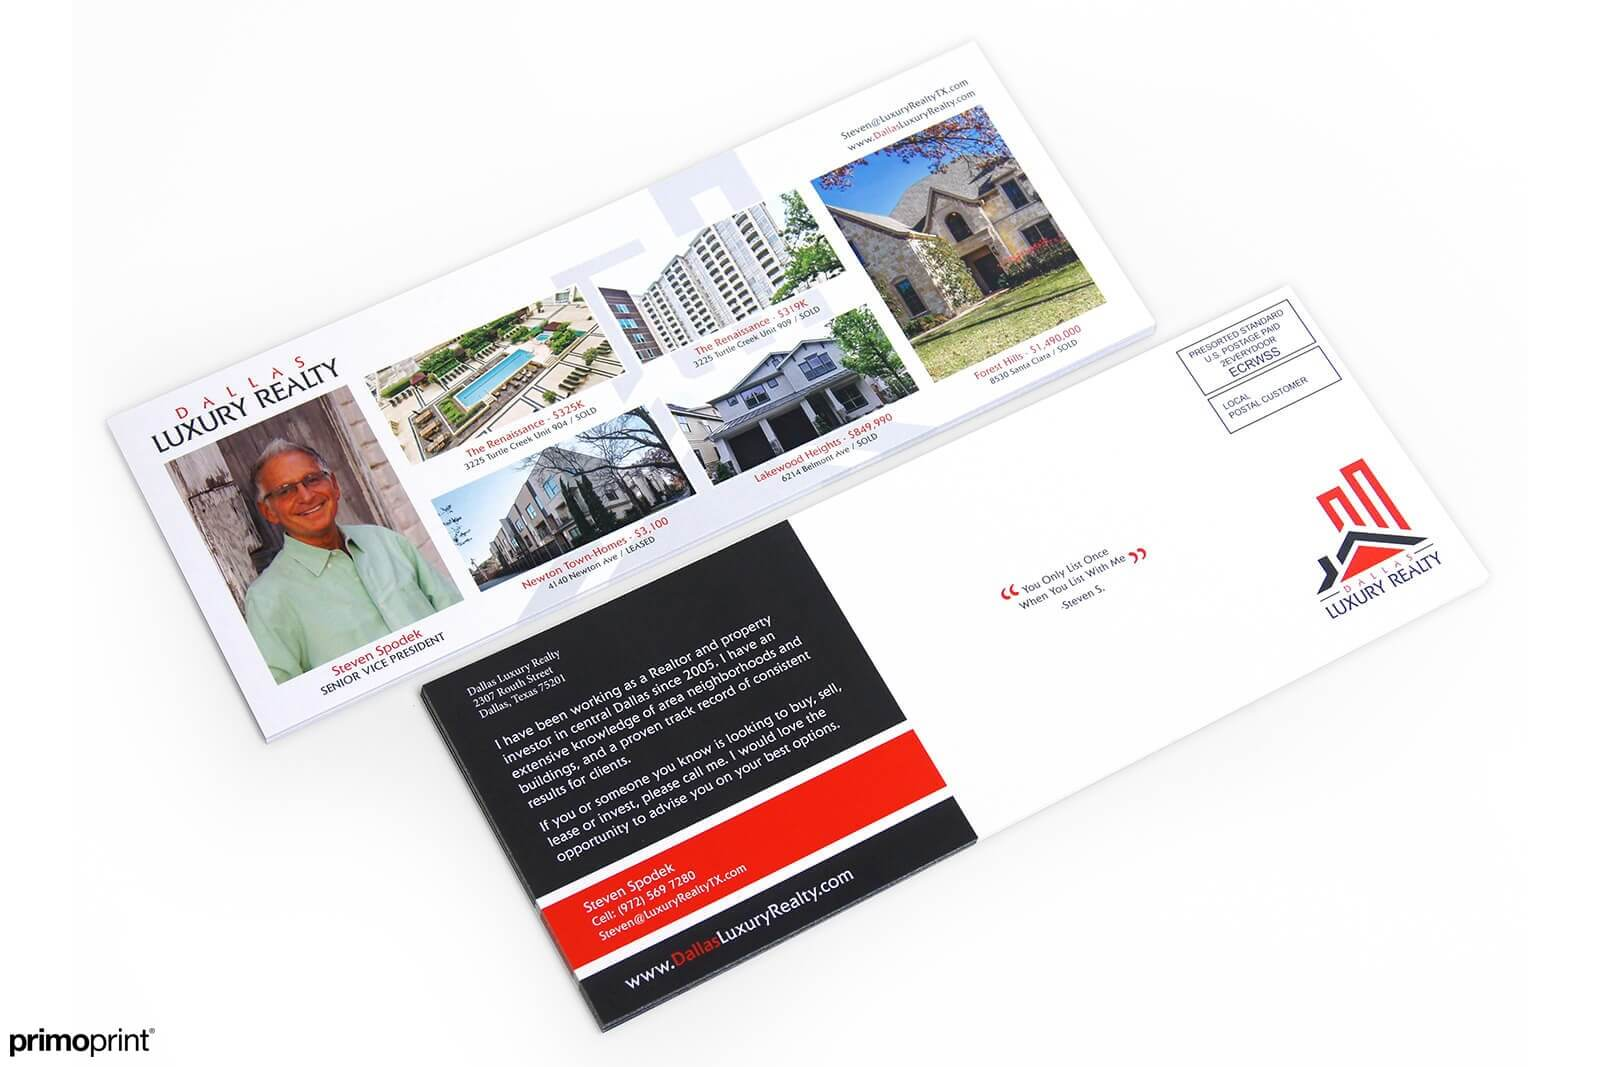 Target an audience with EDDM®. This is an example of a custom designed 4.5 x 12 inch Glossy UV coated Realtor EDDM® postcard.